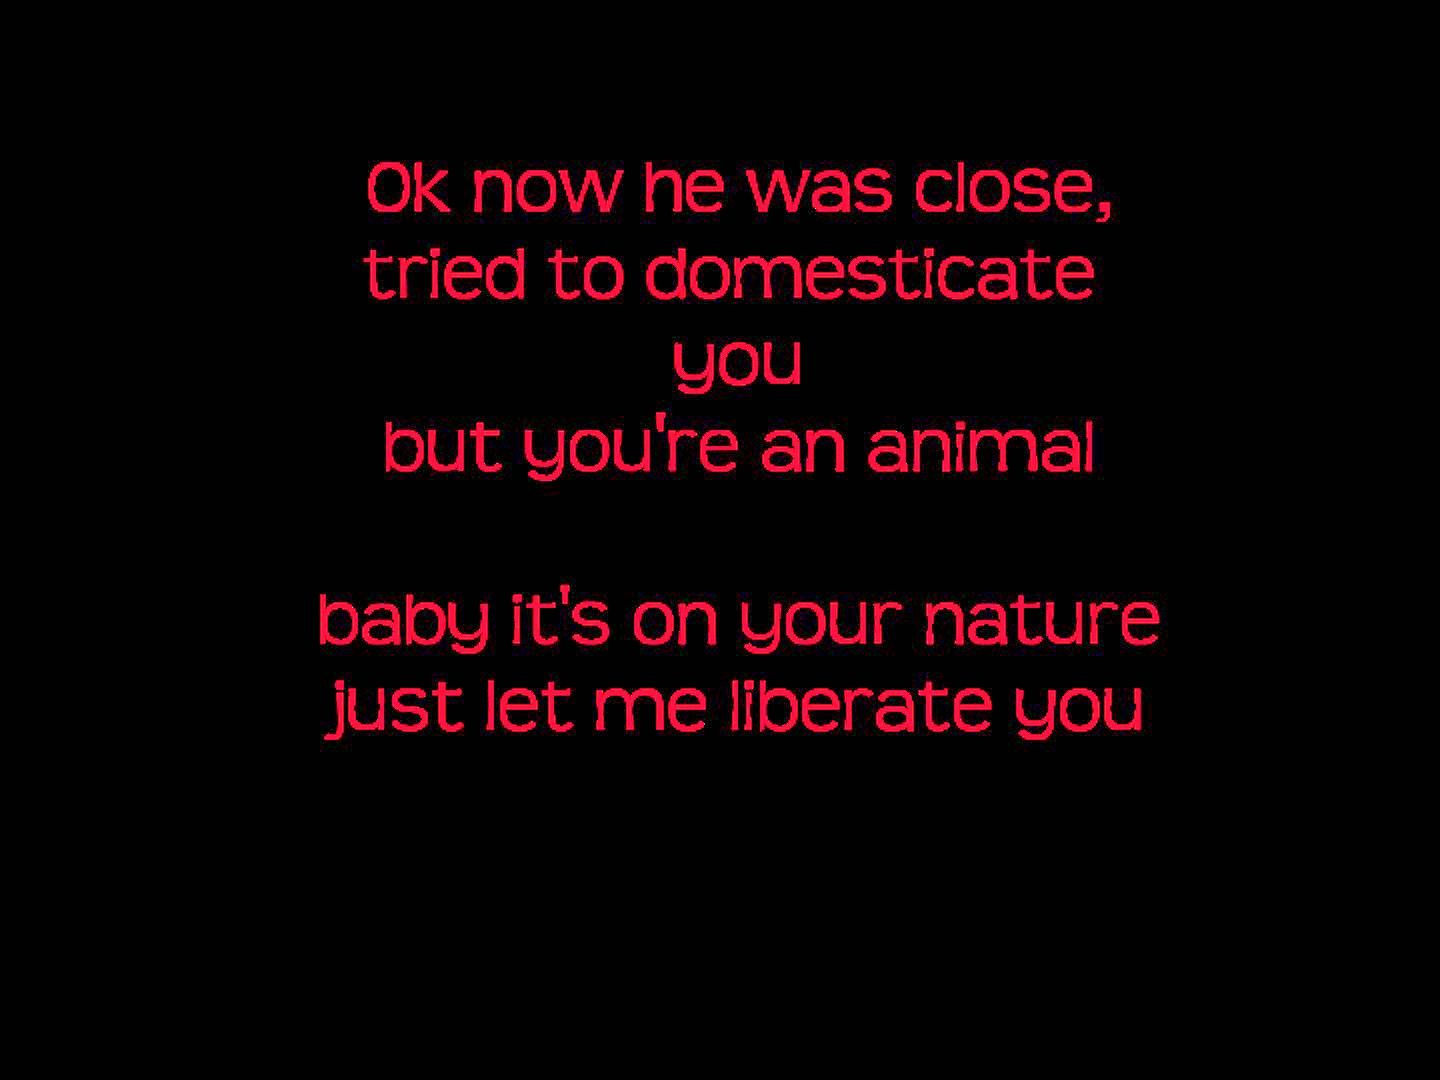 Blurred Lines Lyrics (Clean) | Lyrics, Blurred lines, Songs